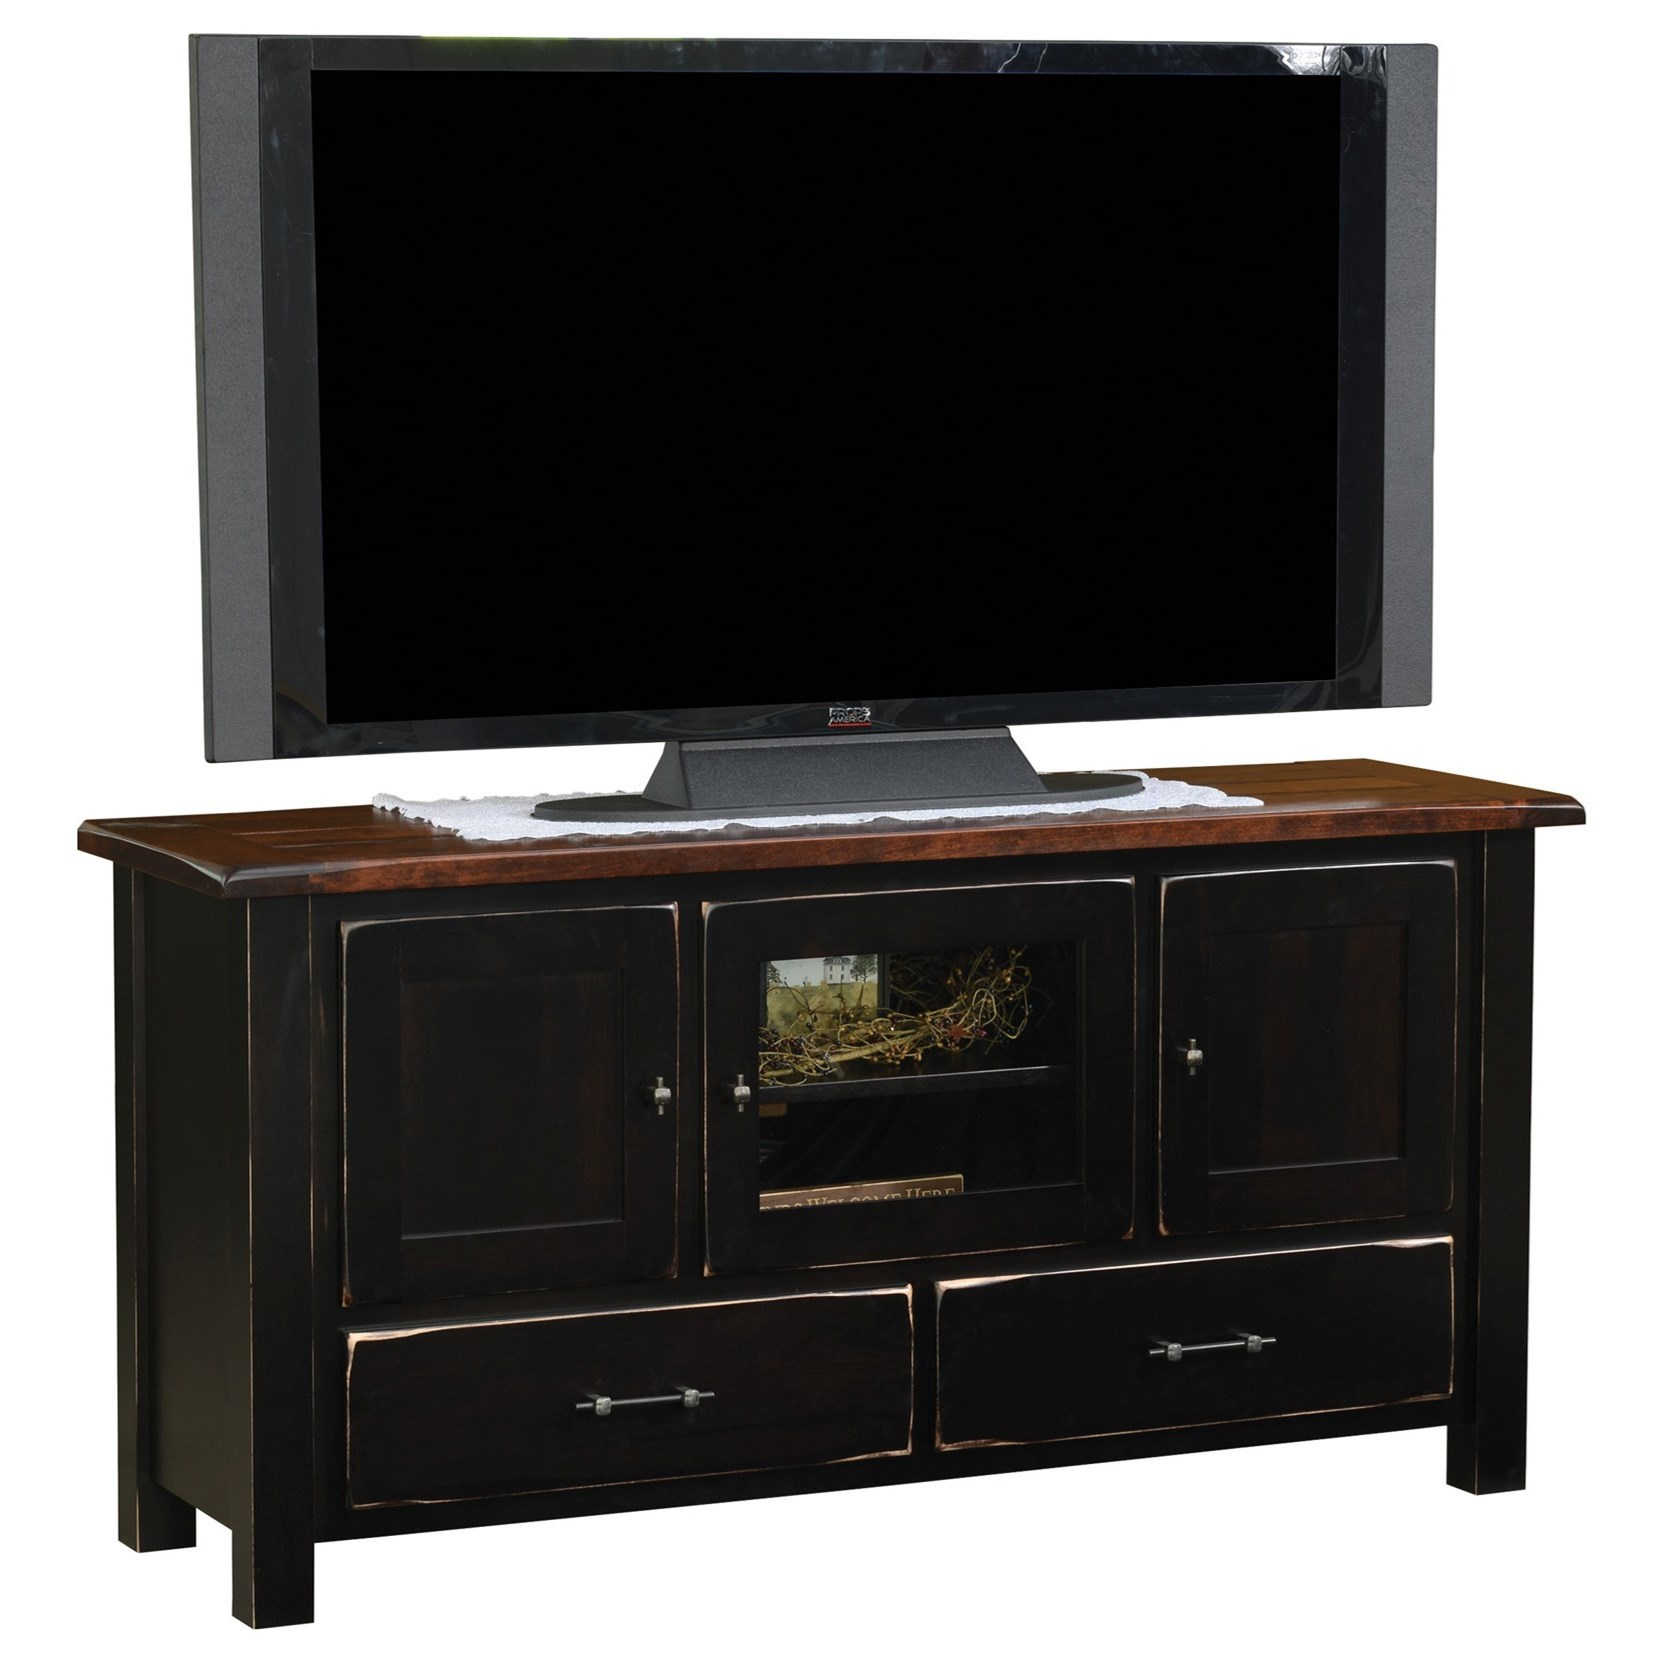 "Barn Floor 60"" TV Stand by Ashery Oak at Saugerties Furniture Mart"